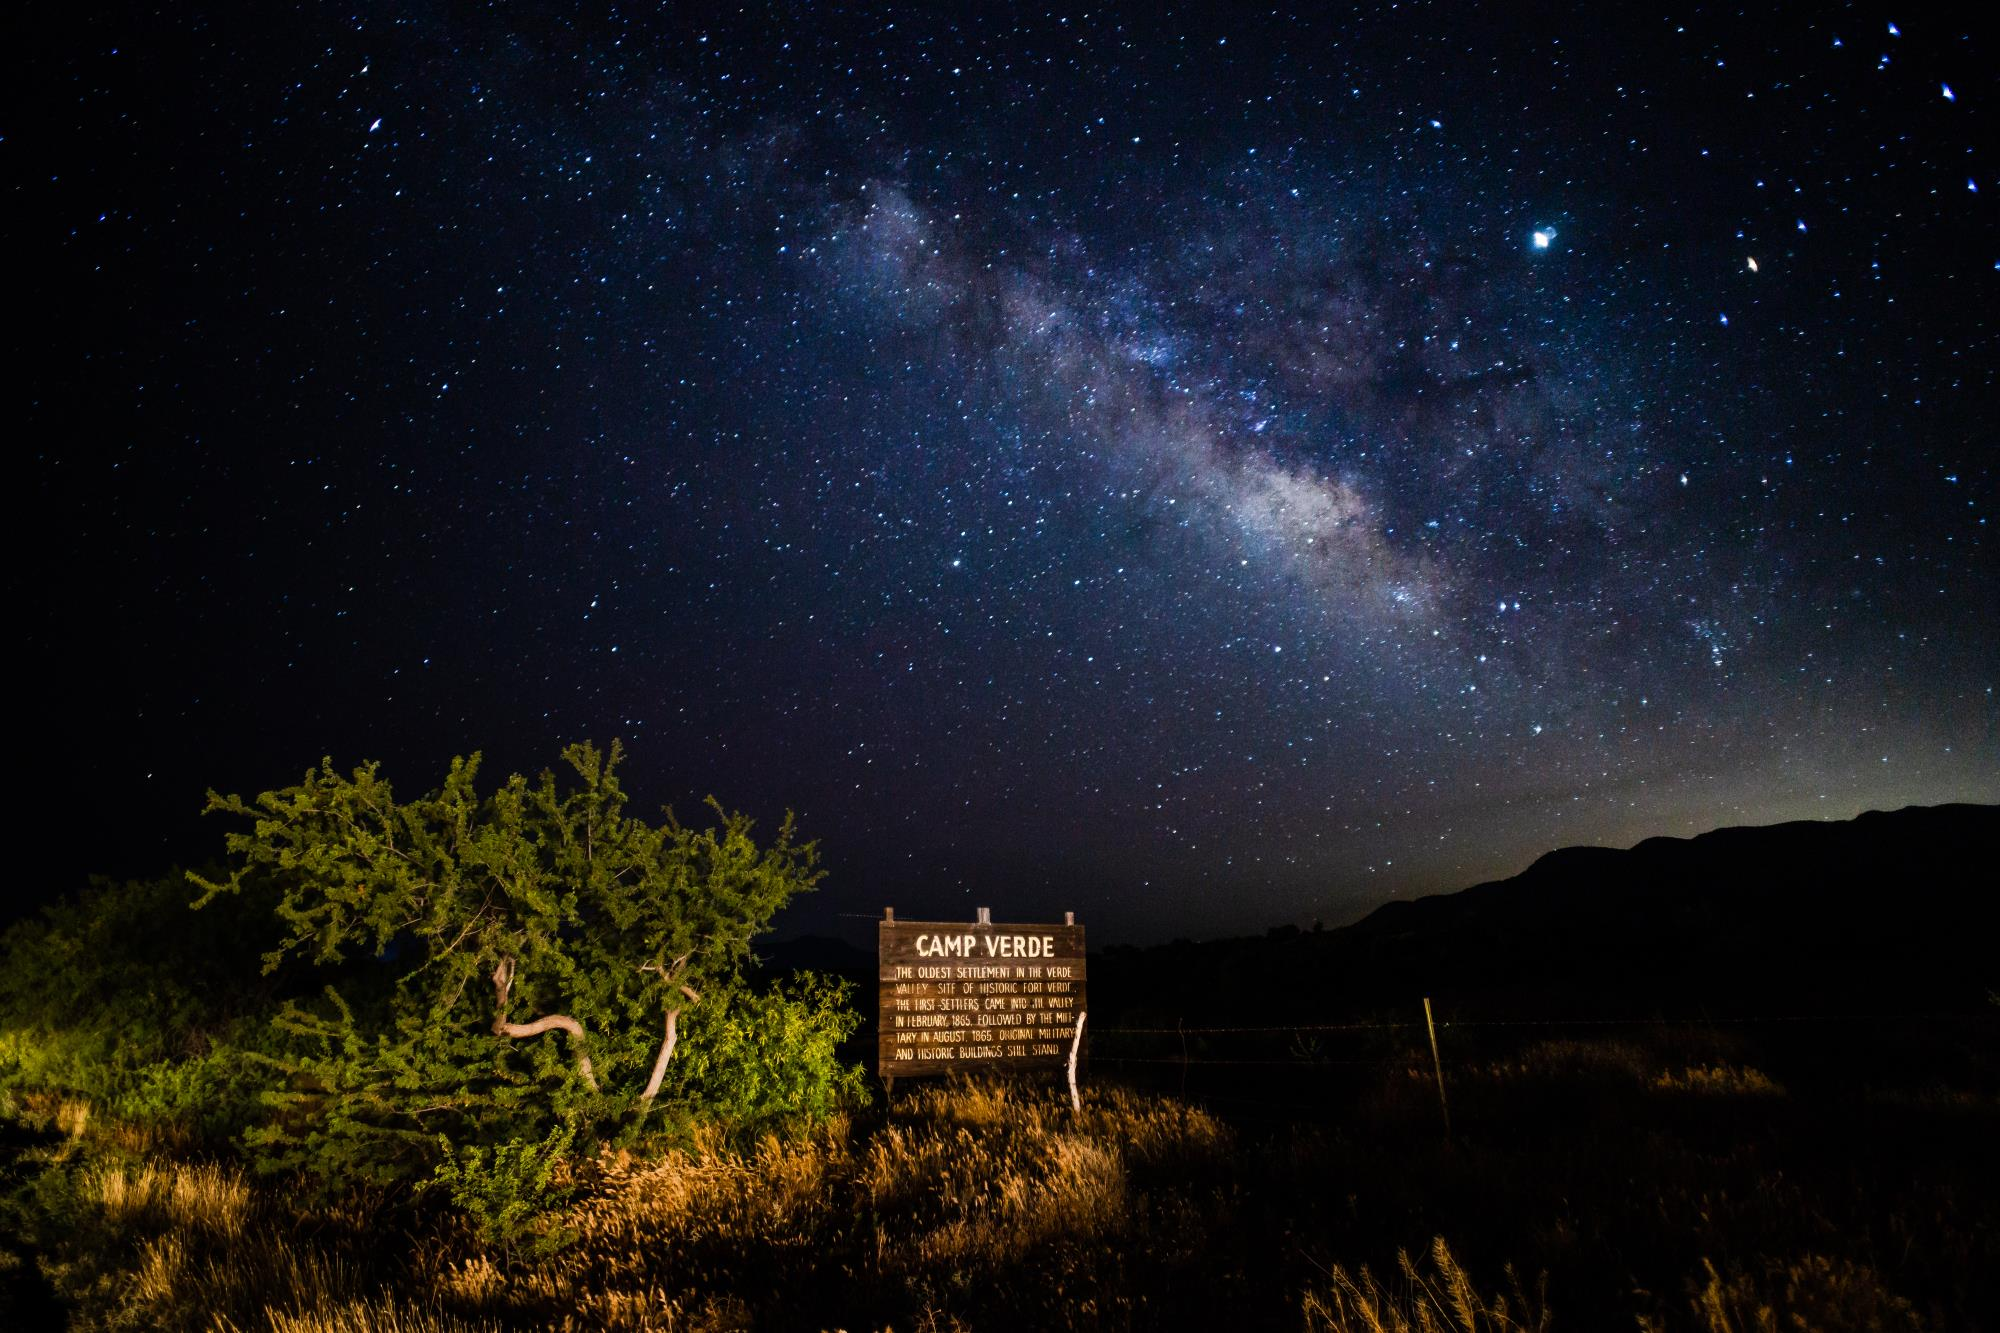 Camp Verde night sky